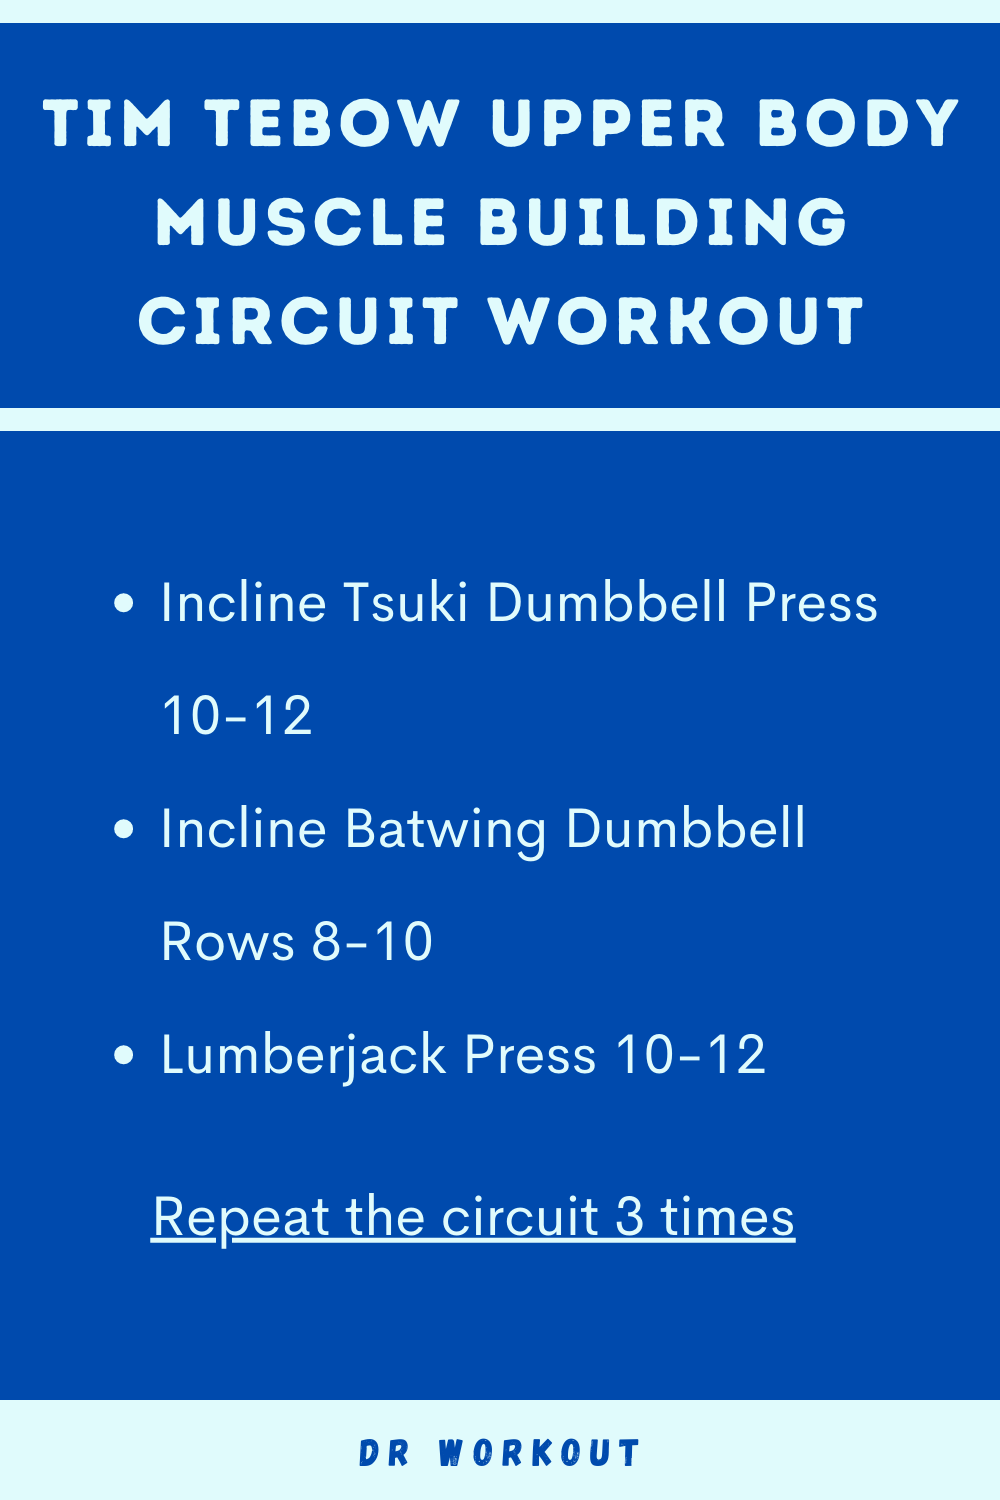 Tim Tebow Upper Body Circuit Workout